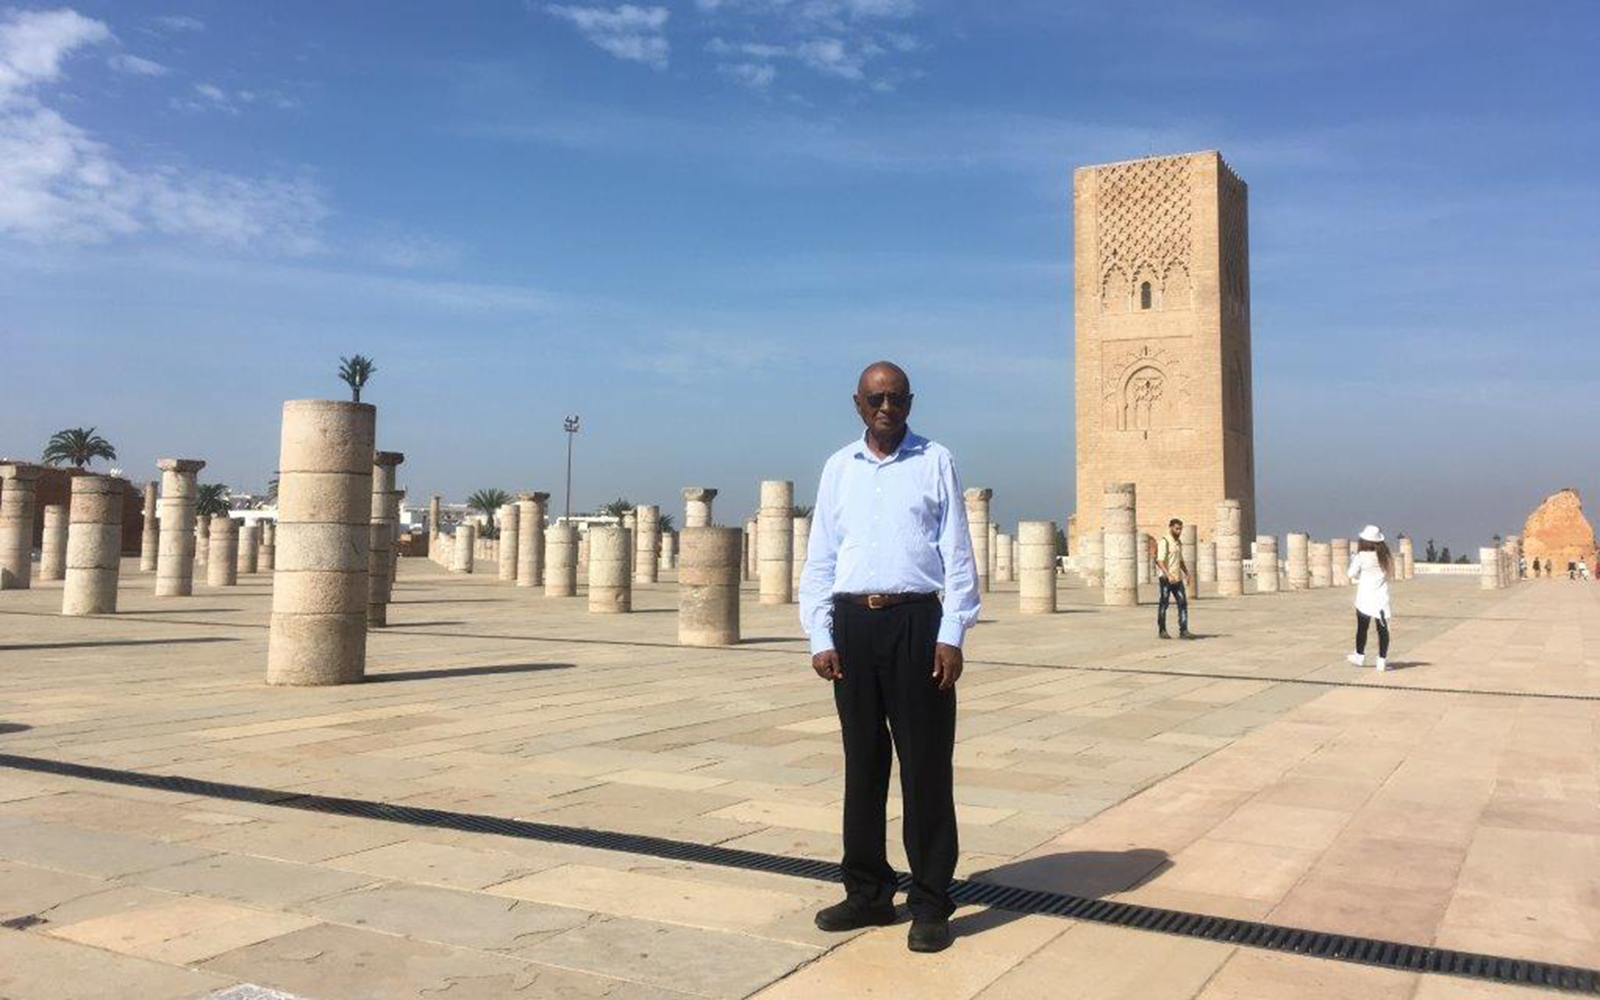 Pictured above, Hussein stands before the Mausoleum of Mohammed V, one of the top tourist attractions in the city of Rabat, both because of its architectural design and its tribute to a famous ruler. (Mo Hussein/UConn School of Business)